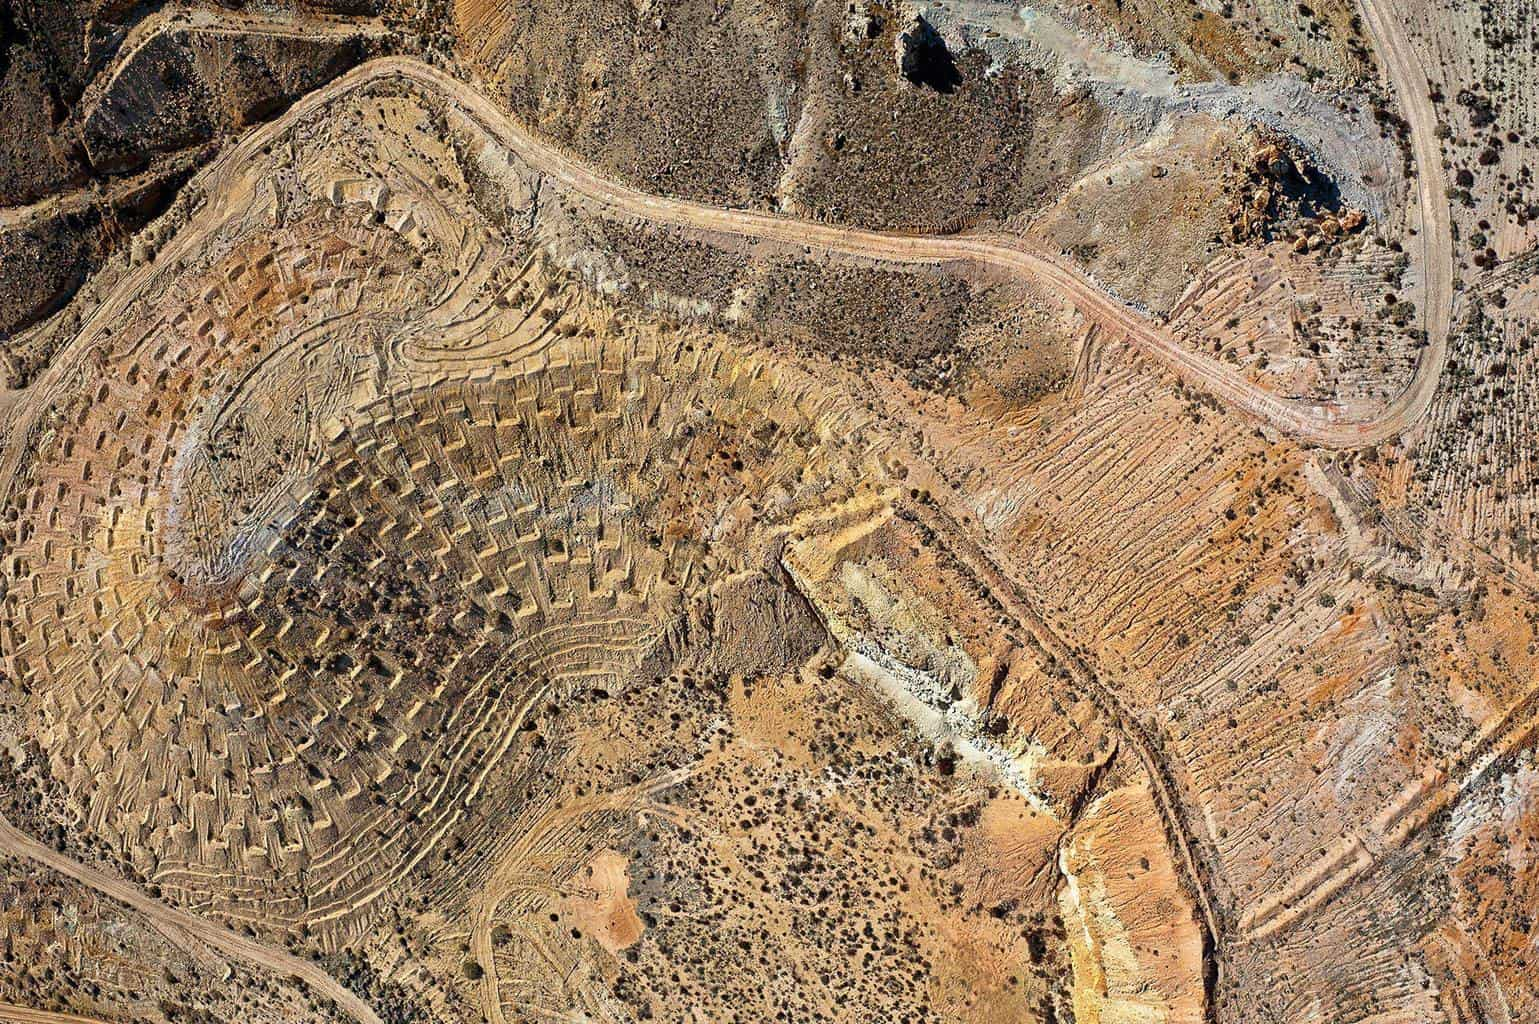 Mining #011, Mulholland's Gold, 2011-2014